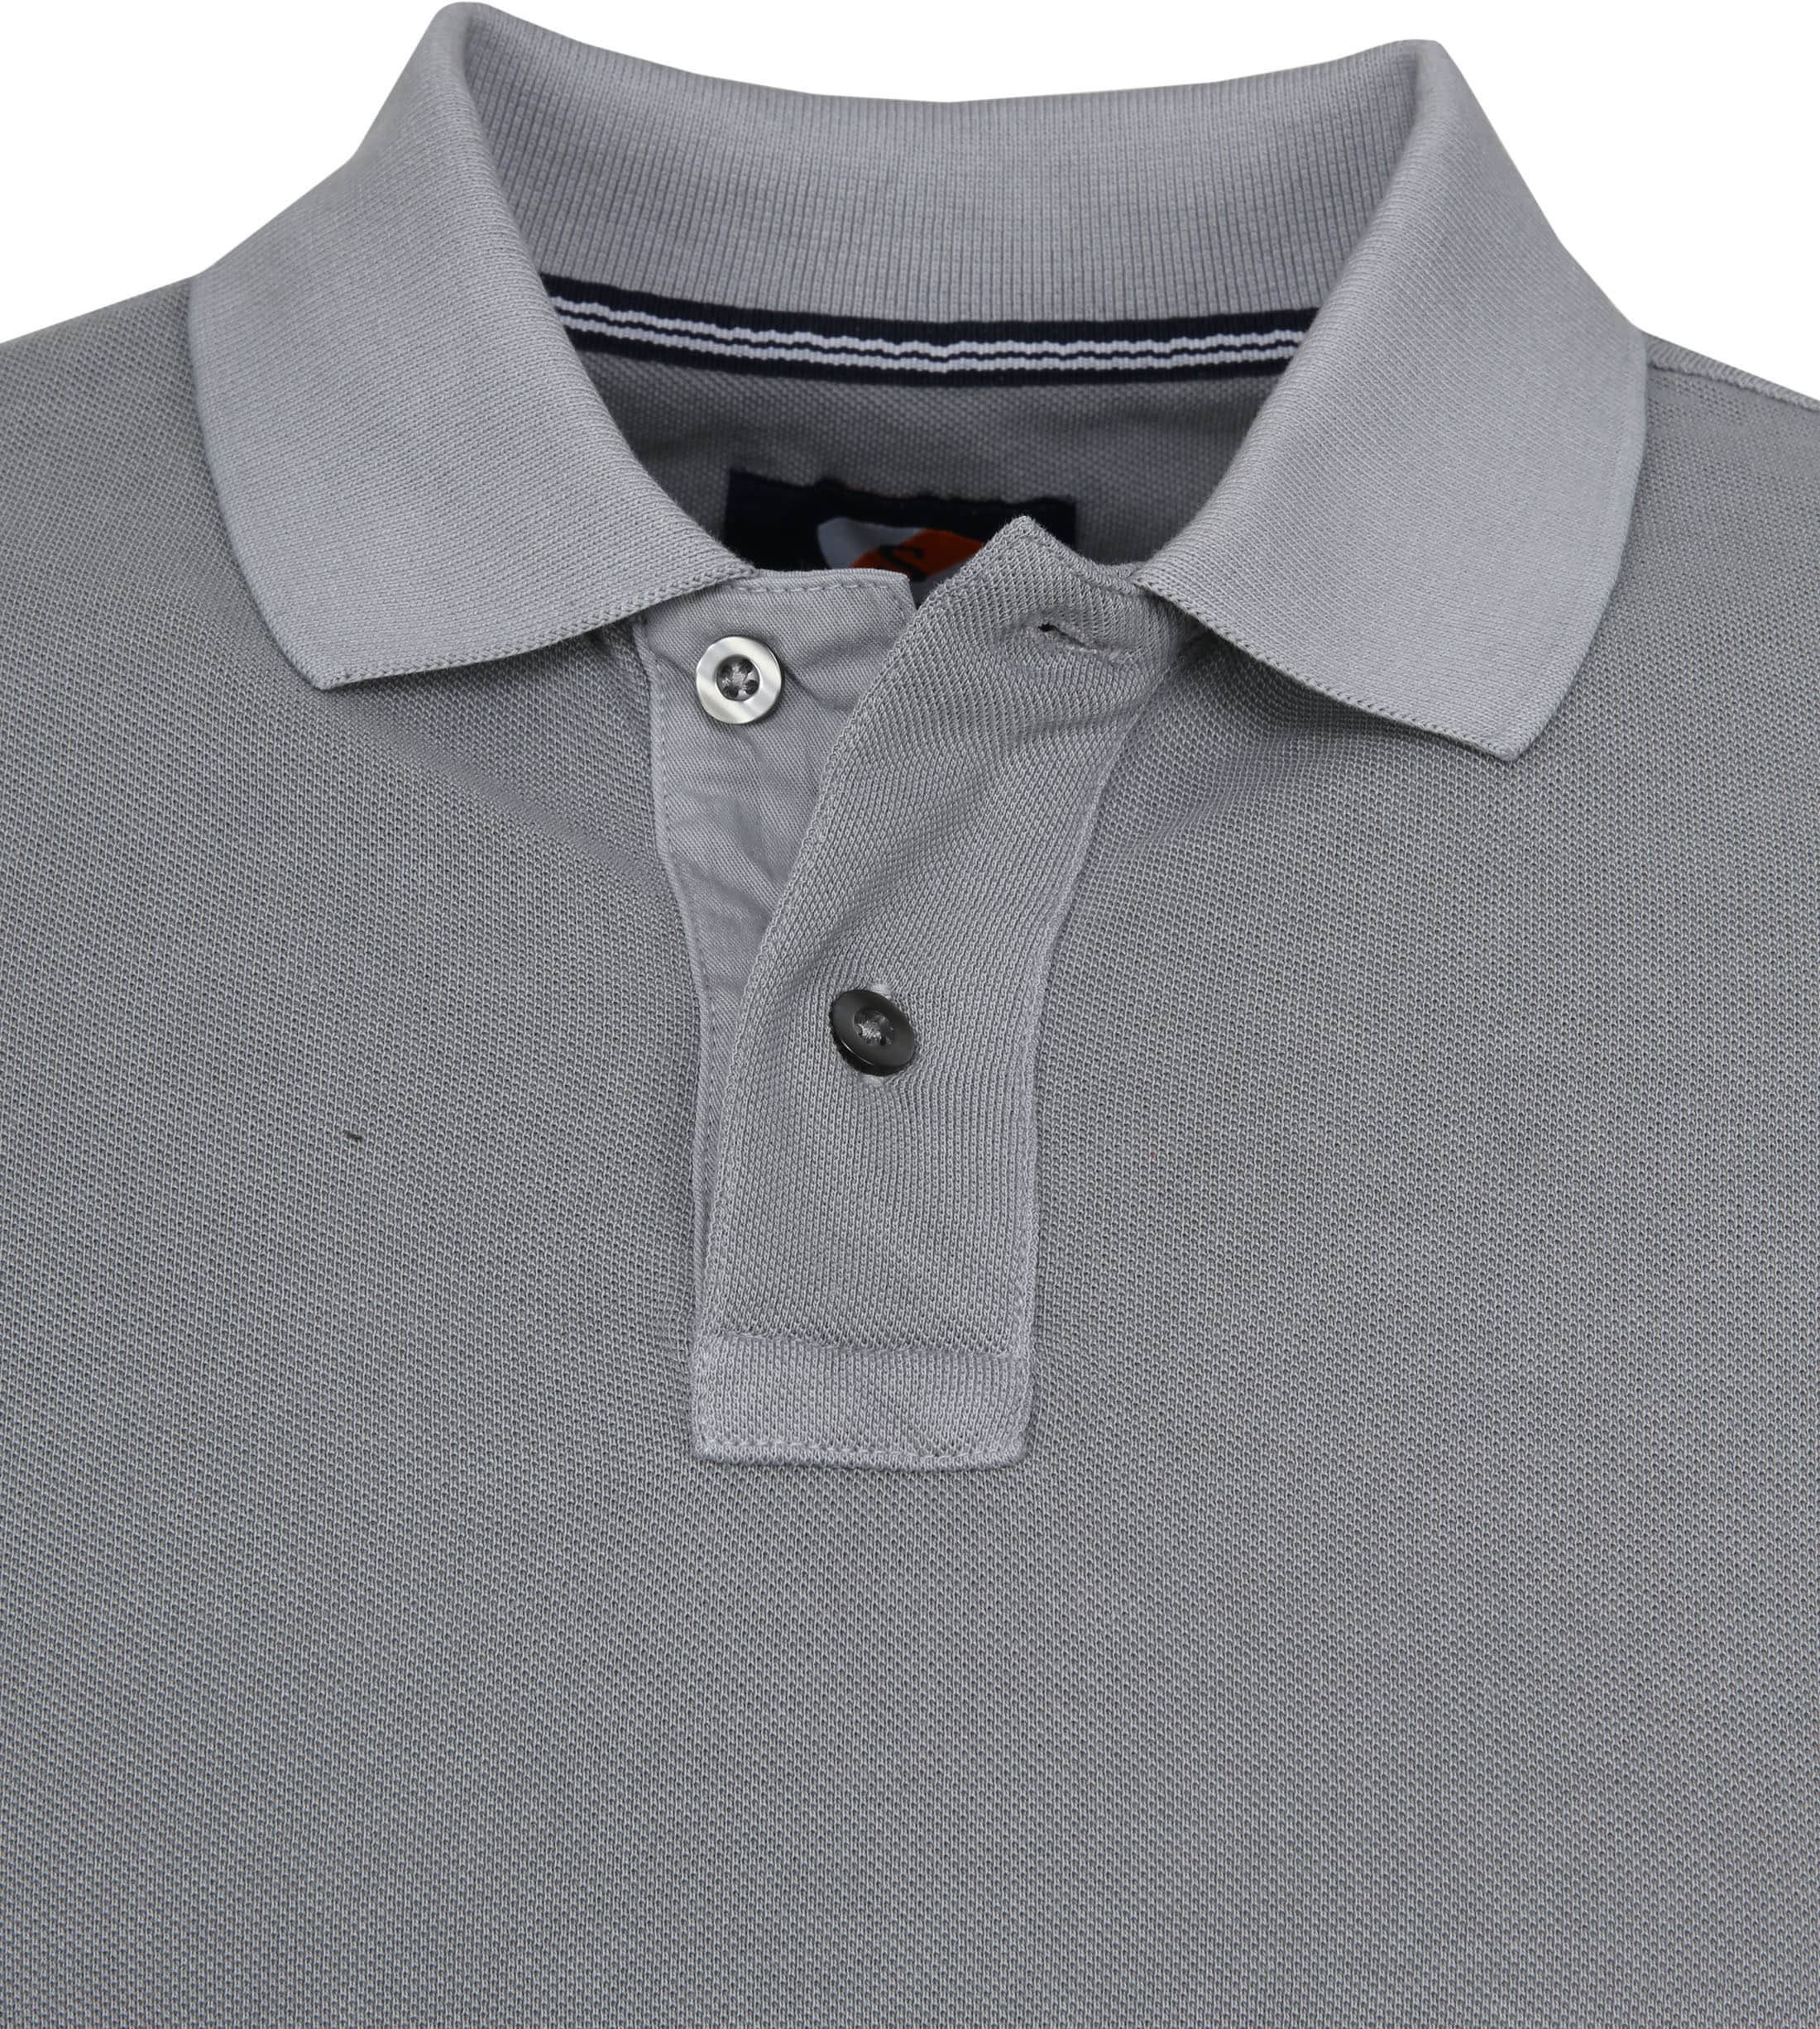 Suitable Stone Wash Poloshirt Grau foto 1